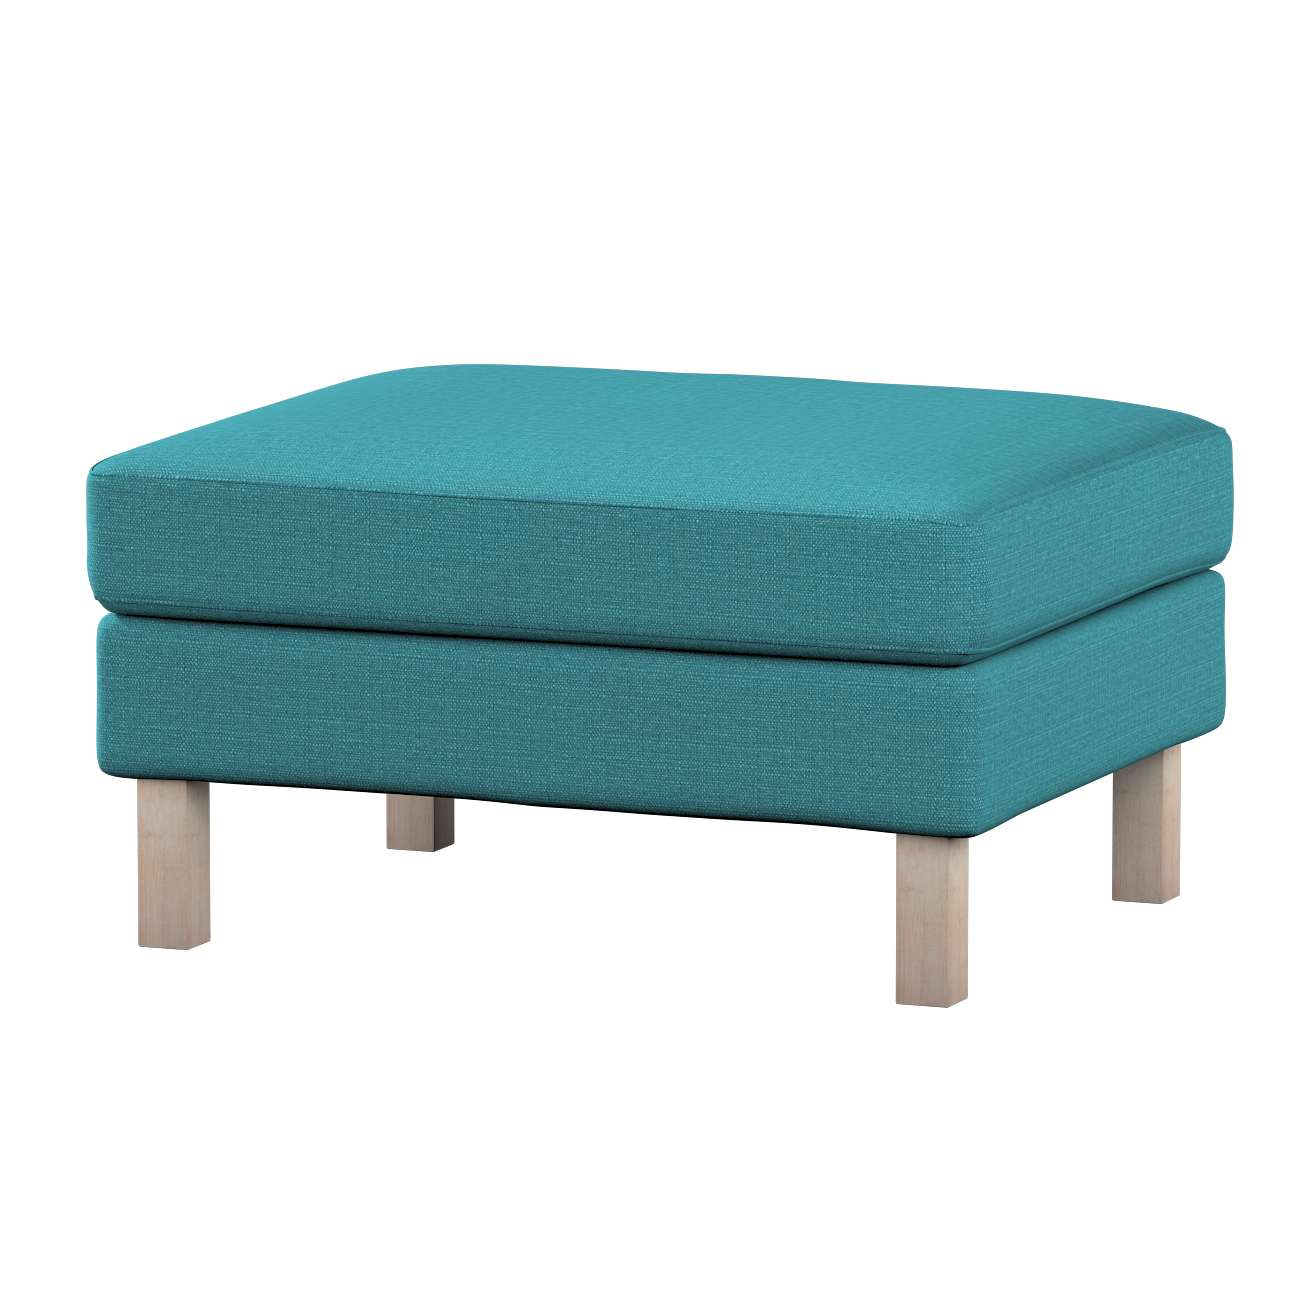 Karlstad footstool cover Karlstad footstool cover in collection Granada, fabric: 104-92